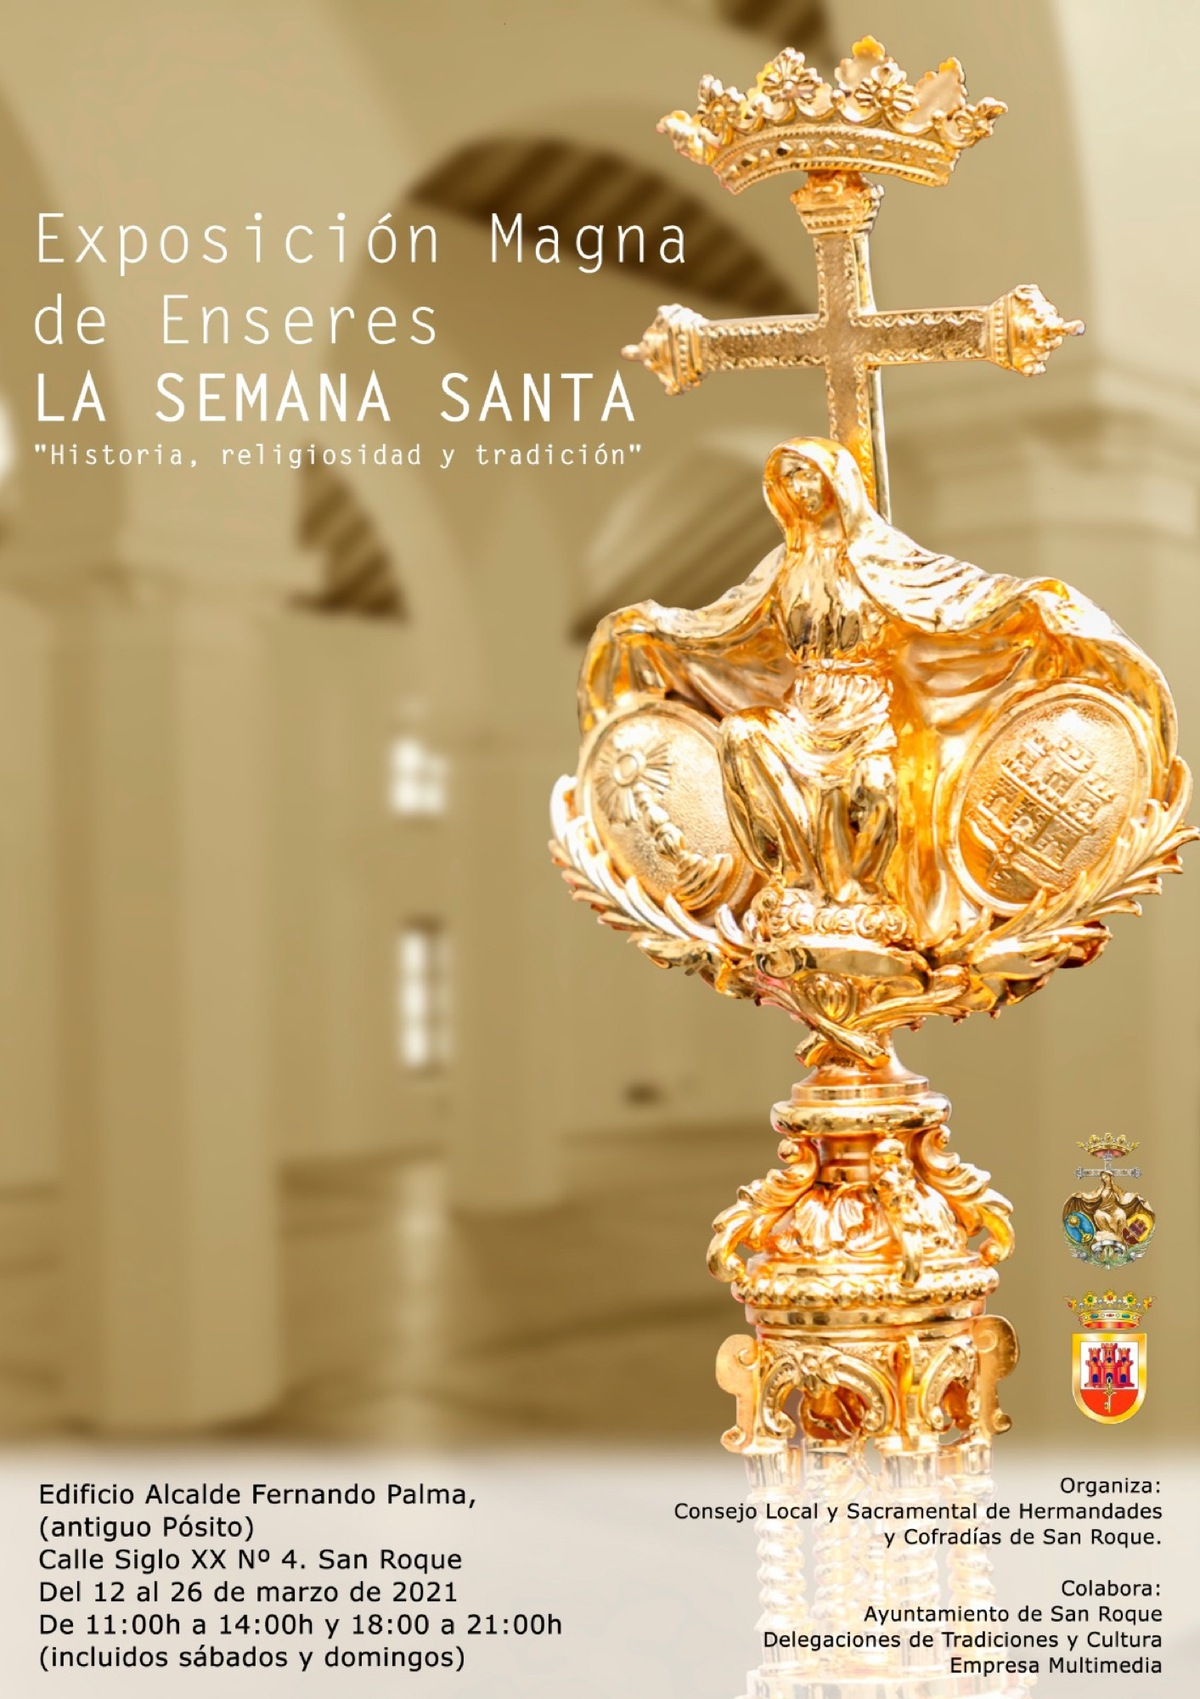 sites/default/files/2021/agenda/semana-santa/expo-magna-san-roque.jpg